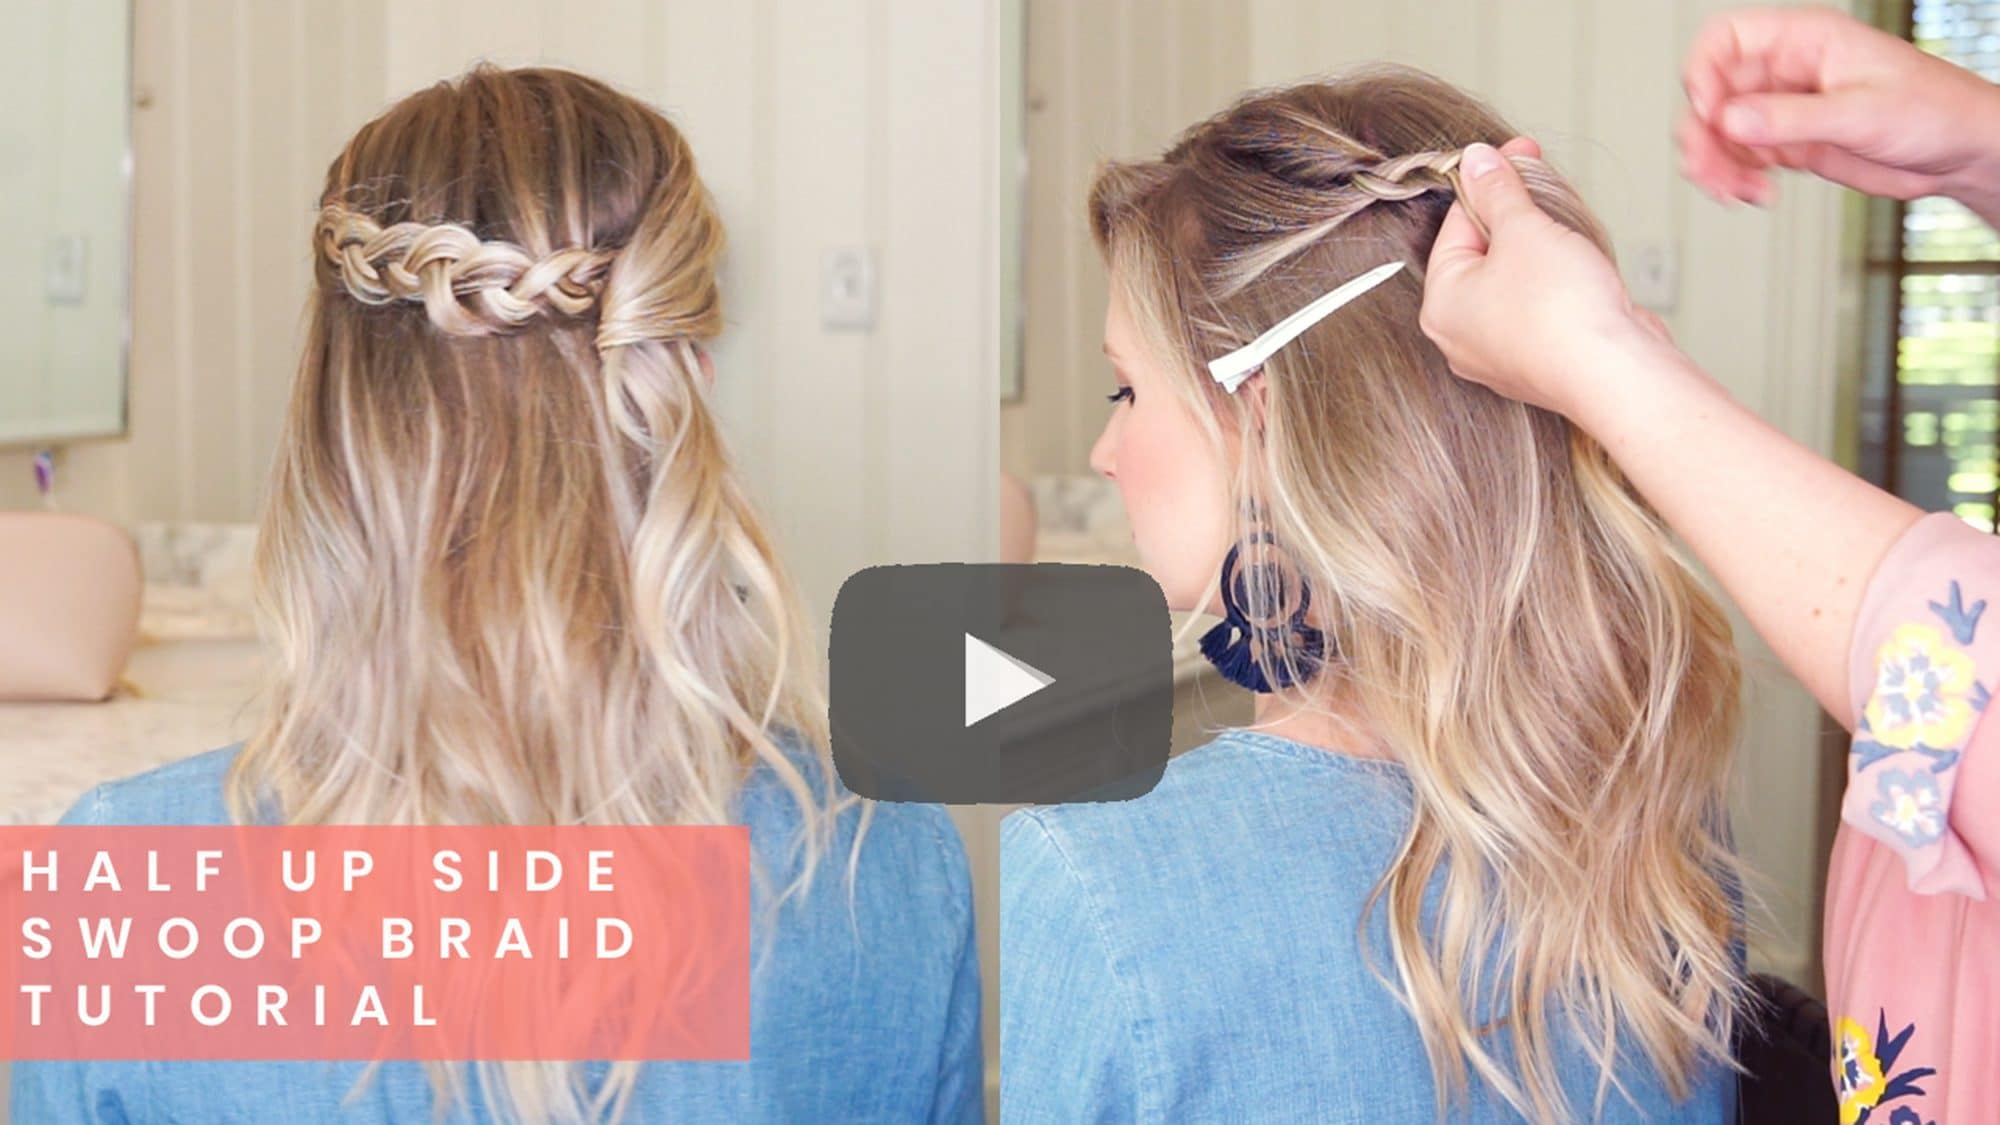 Half Up Side Swoop Braid Tutorial wiht Kate from Small Things Blog | www.ashleybrookedesigns.com